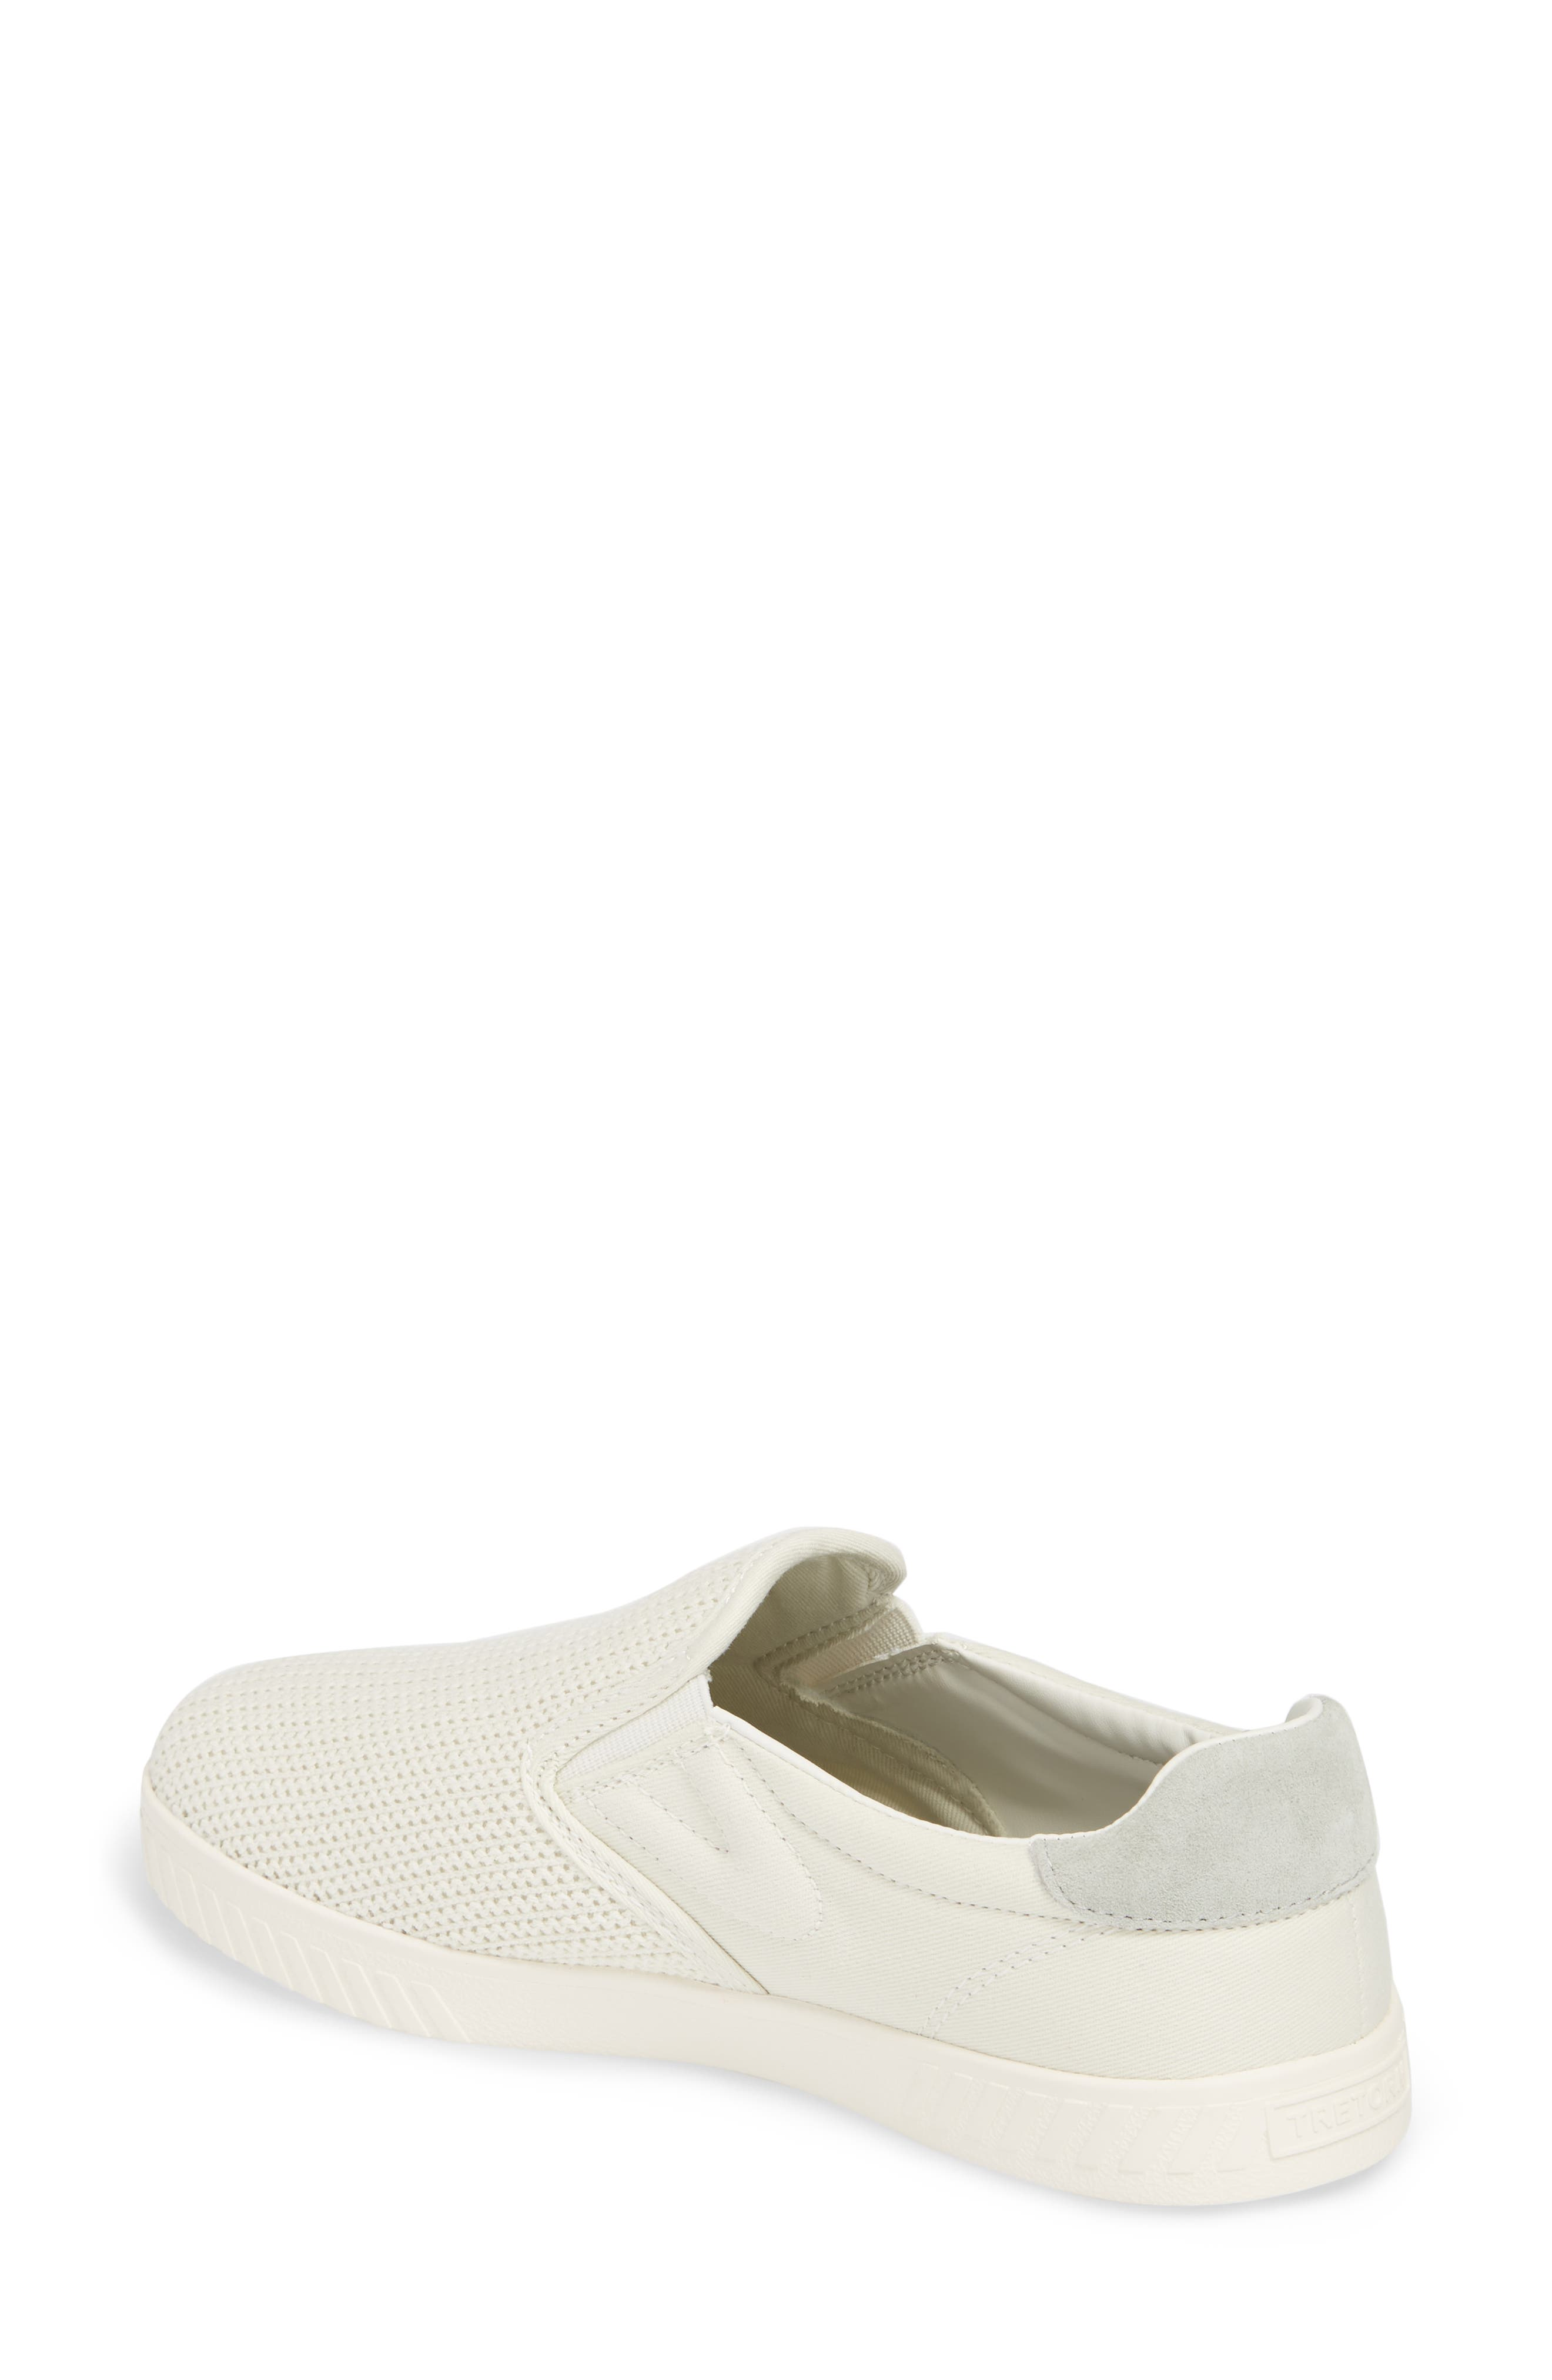 Cruz Mesh Slip-On Sneaker,                             Alternate thumbnail 5, color,